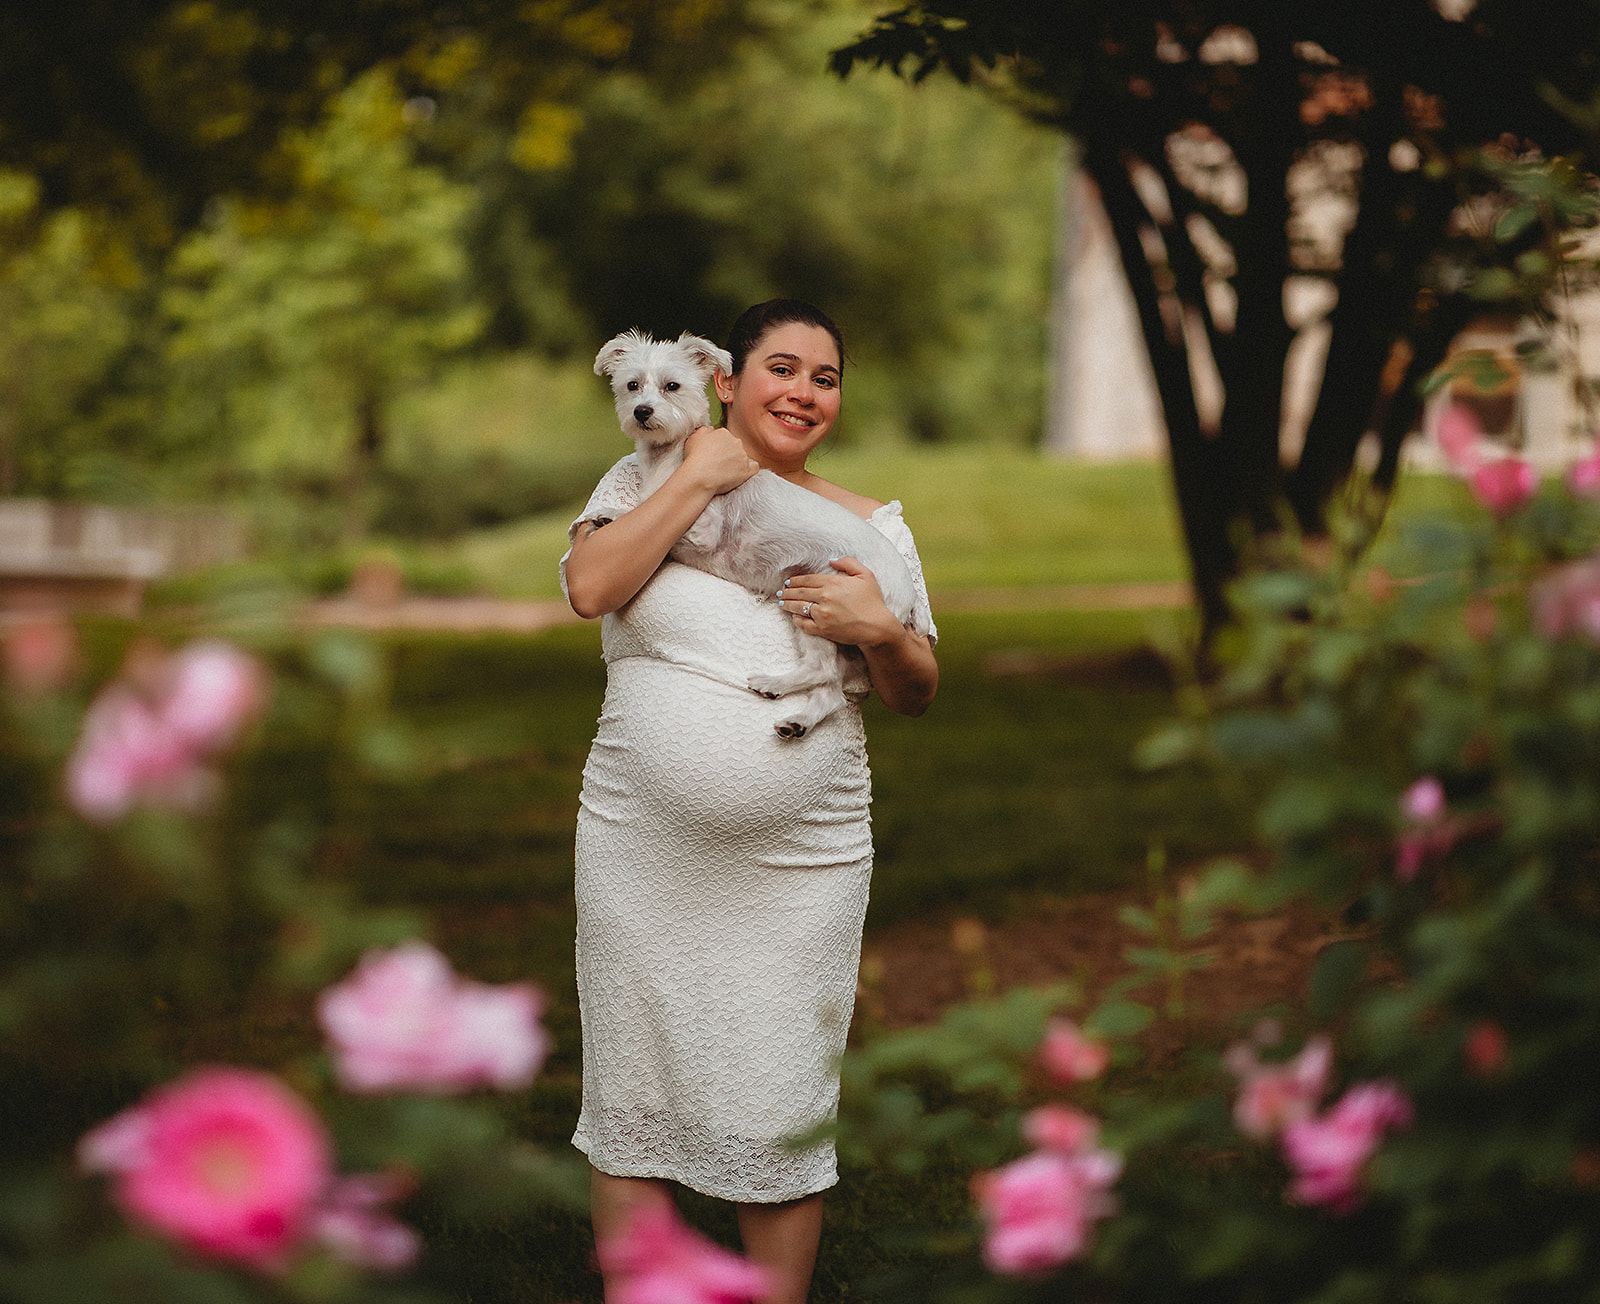 Pregnant woman smiling in flowers holding small white dog